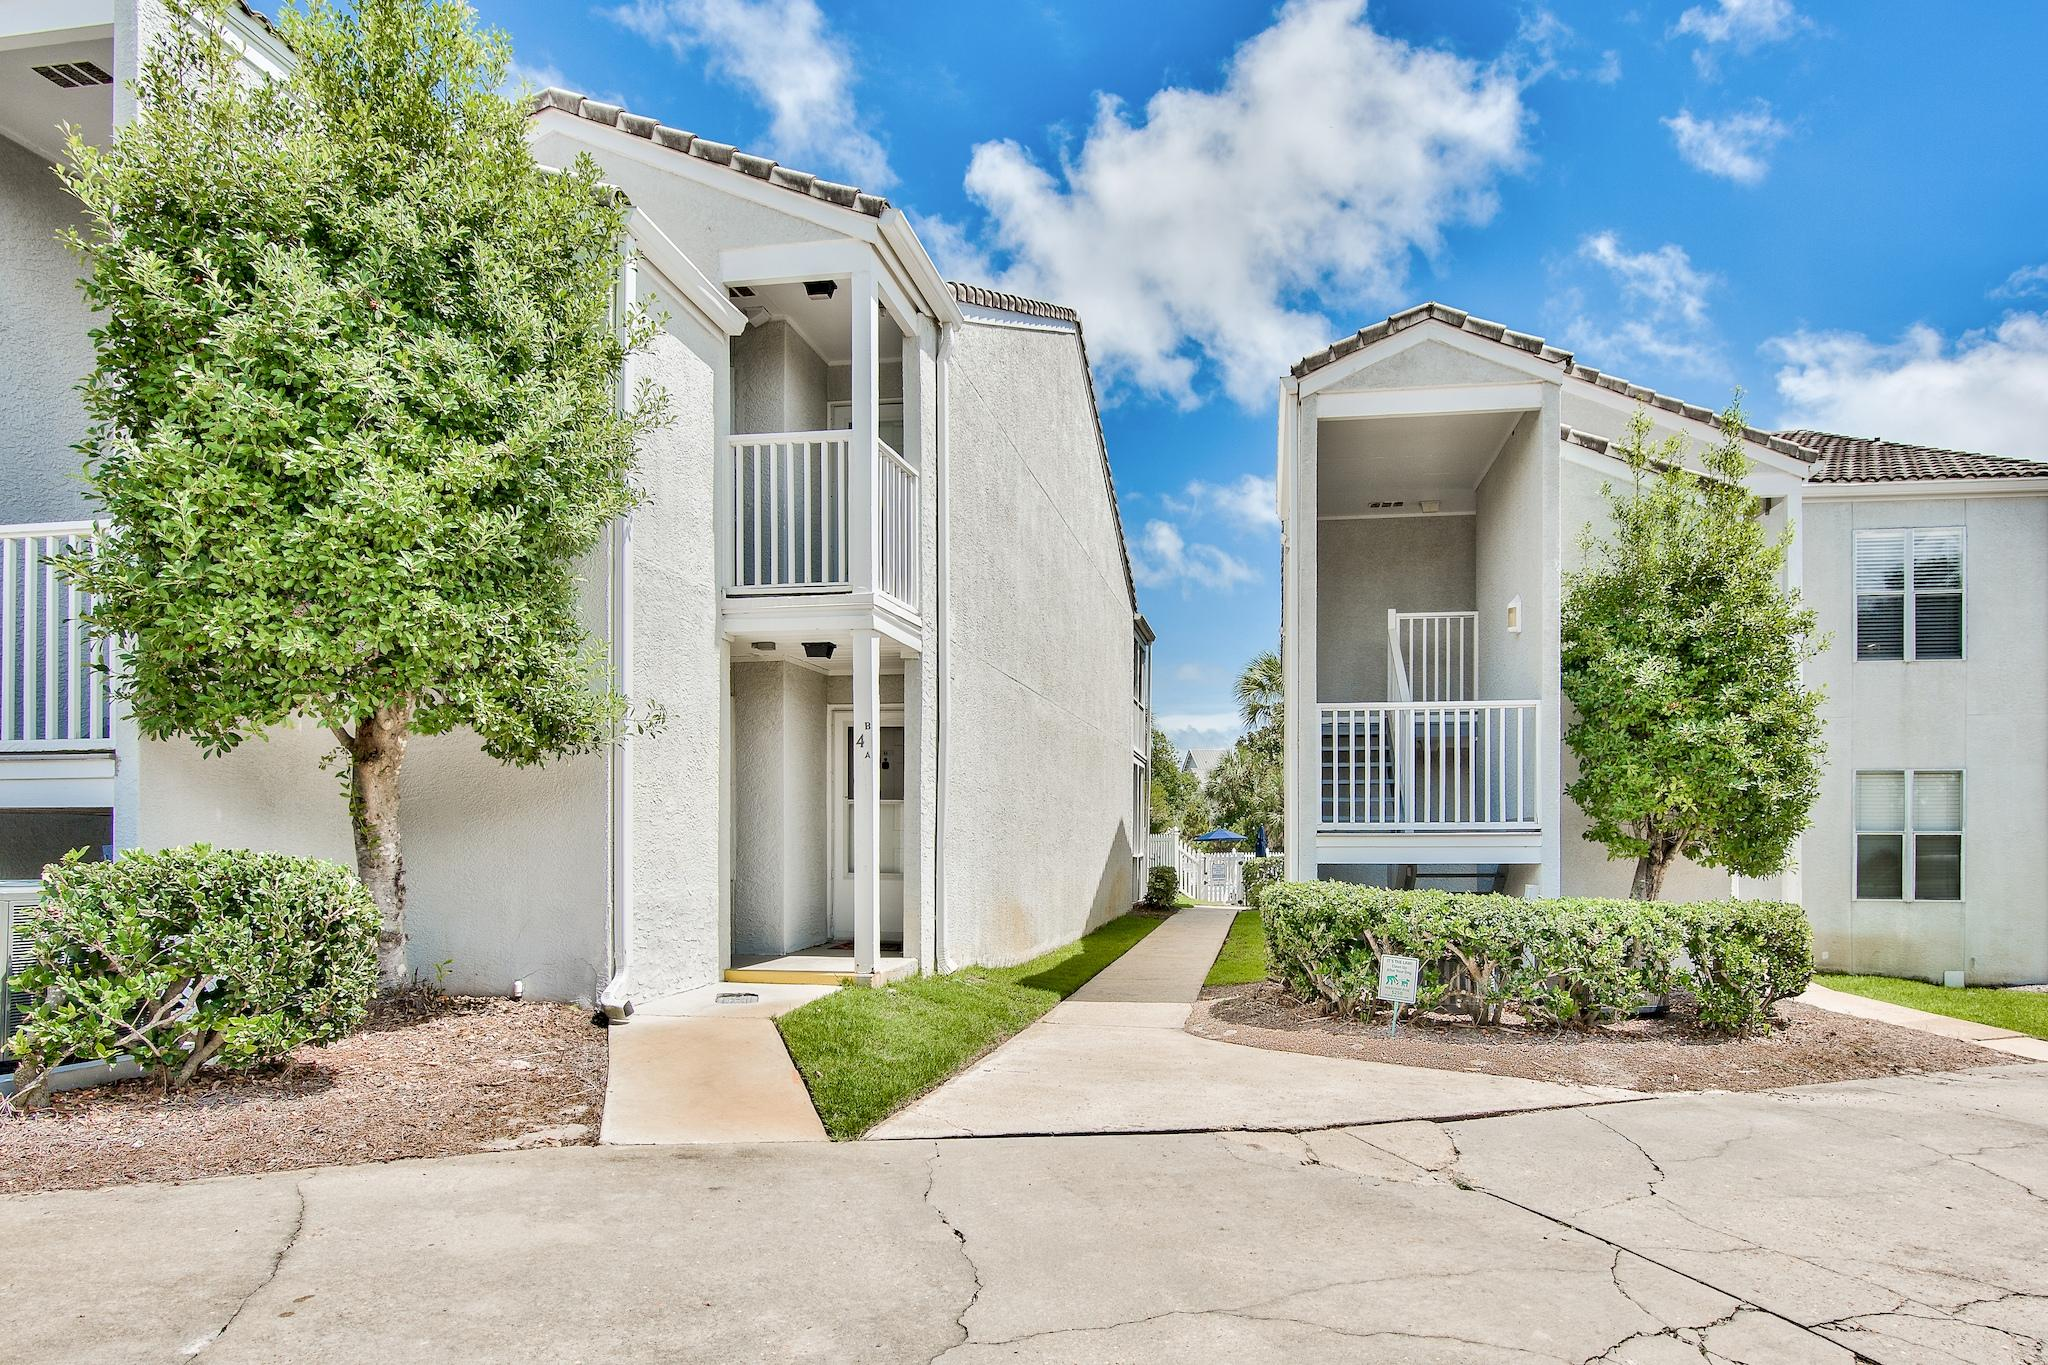 Photo of home for sale at 4984 Co Highway 30a, Santa Rosa Beach FL